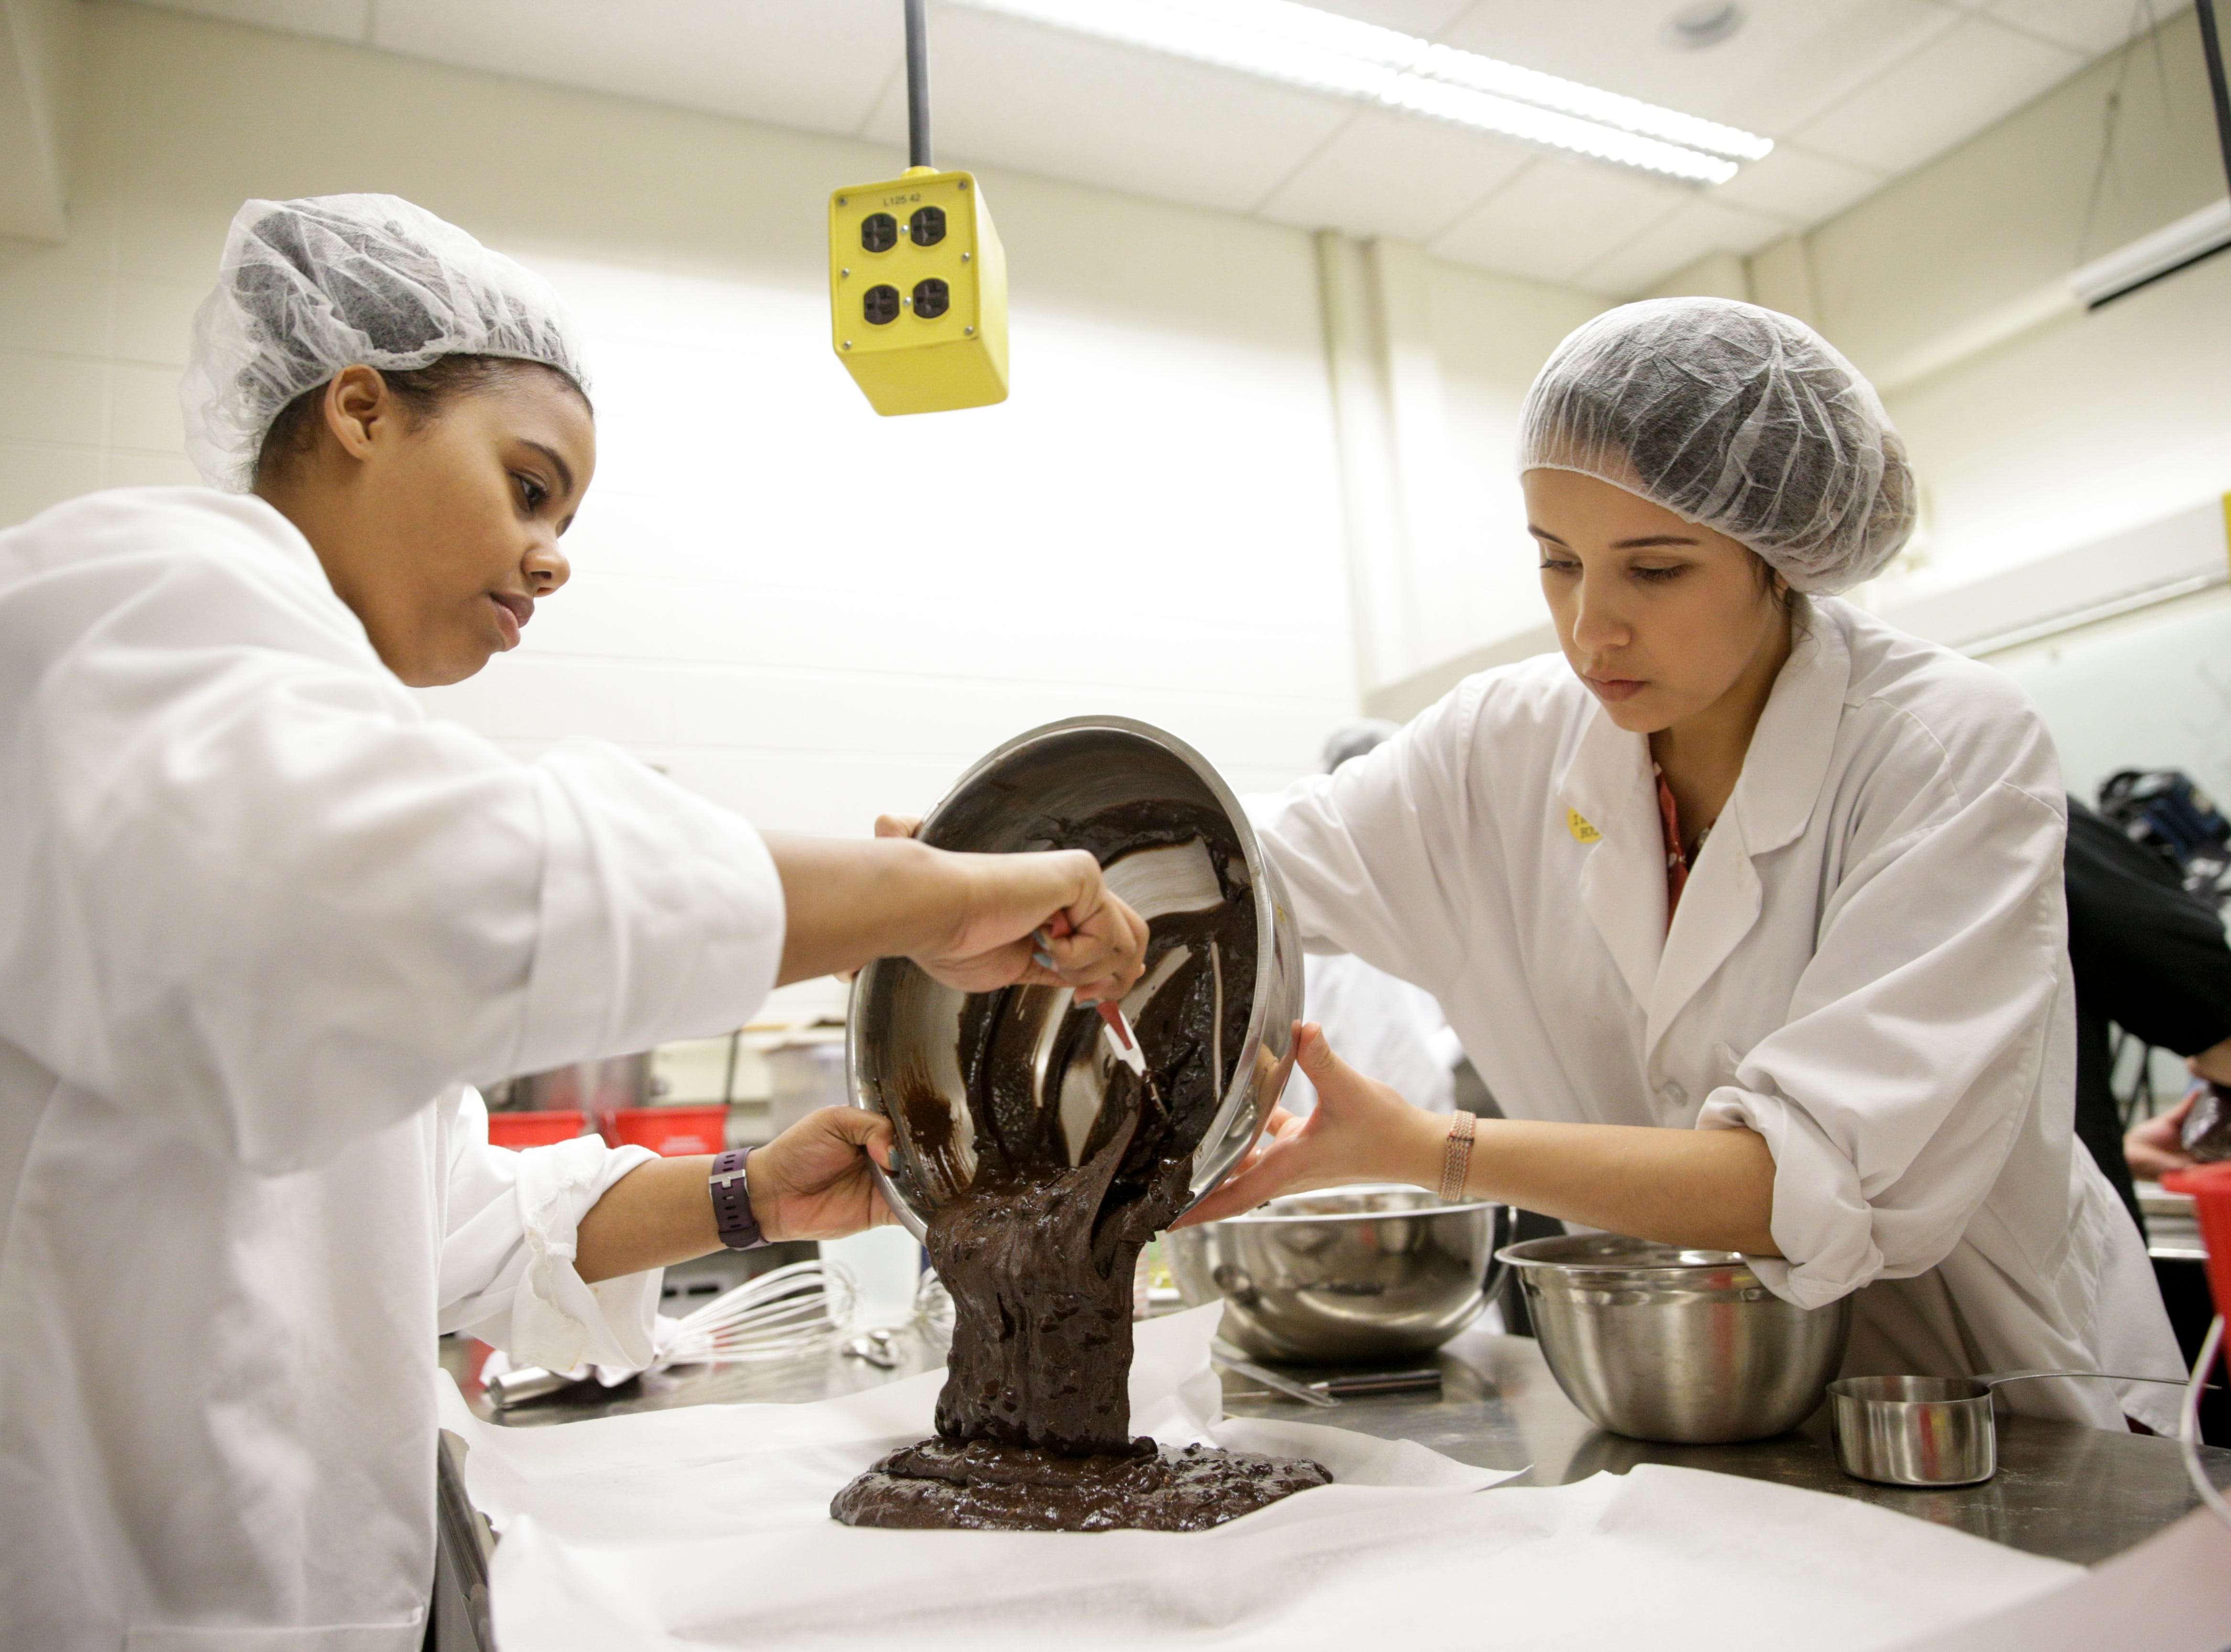 Gabriela Calzada, right, helps Felicia Hall pour cricket brownie batter onto a tray, Friday, April 5, 2019, at Purdue University in West Lafayette. The brownies and other insect incorporated dishes will be served during Saturday's Spring Fest.